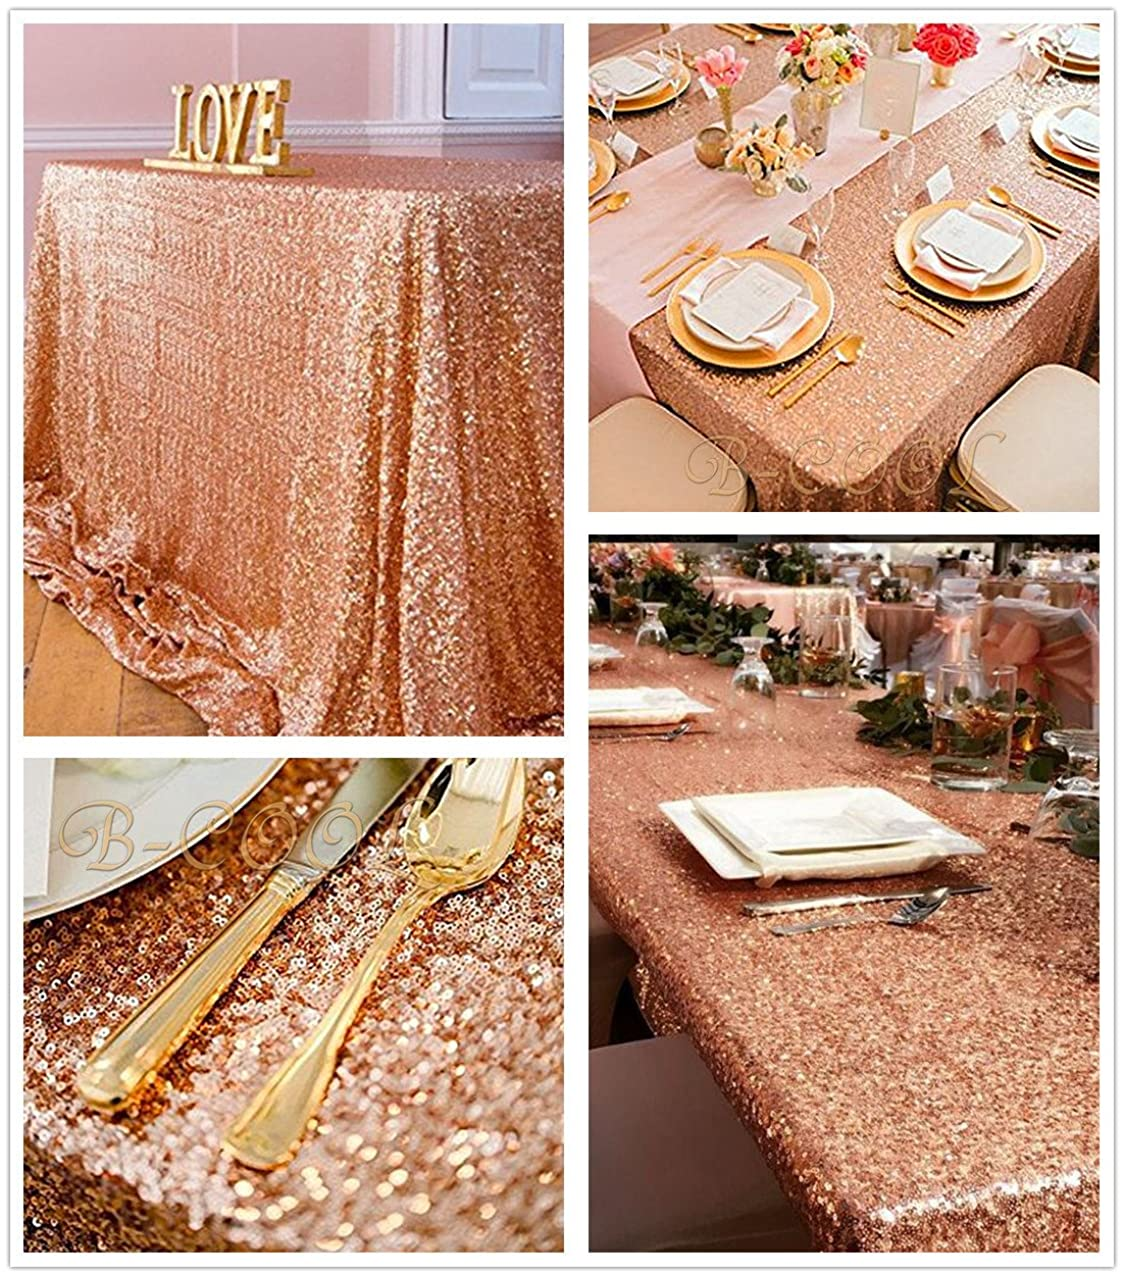 B-COOL Sparkly Rose Gold Sparkly Sequin Glamorous Tablecloth/Backdrop Wedding Party Decorations